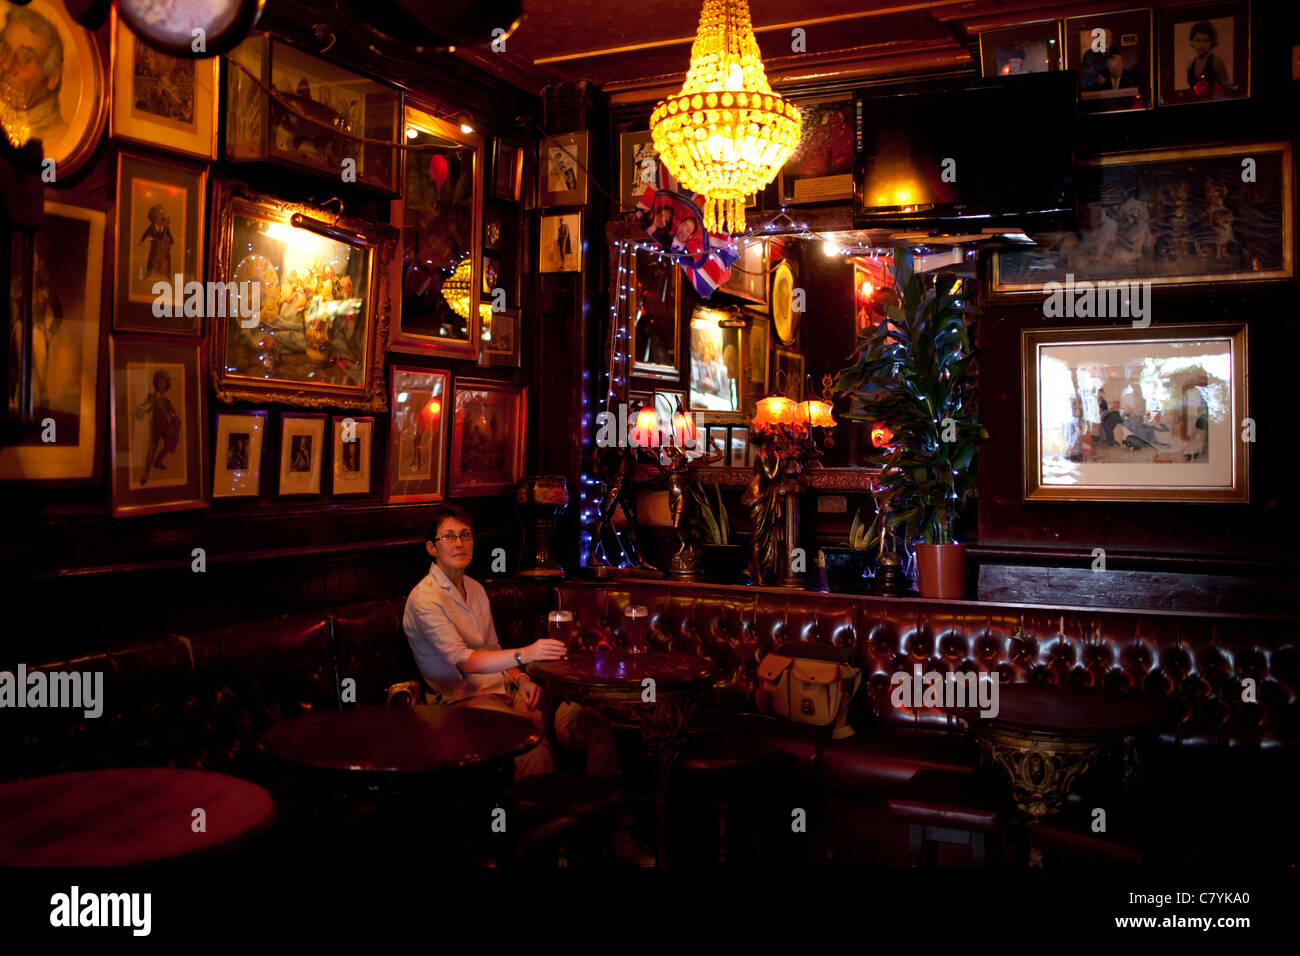 A woman enjoying a drink in the Cross Keys Public House in Covent Garden, London - Stock Image